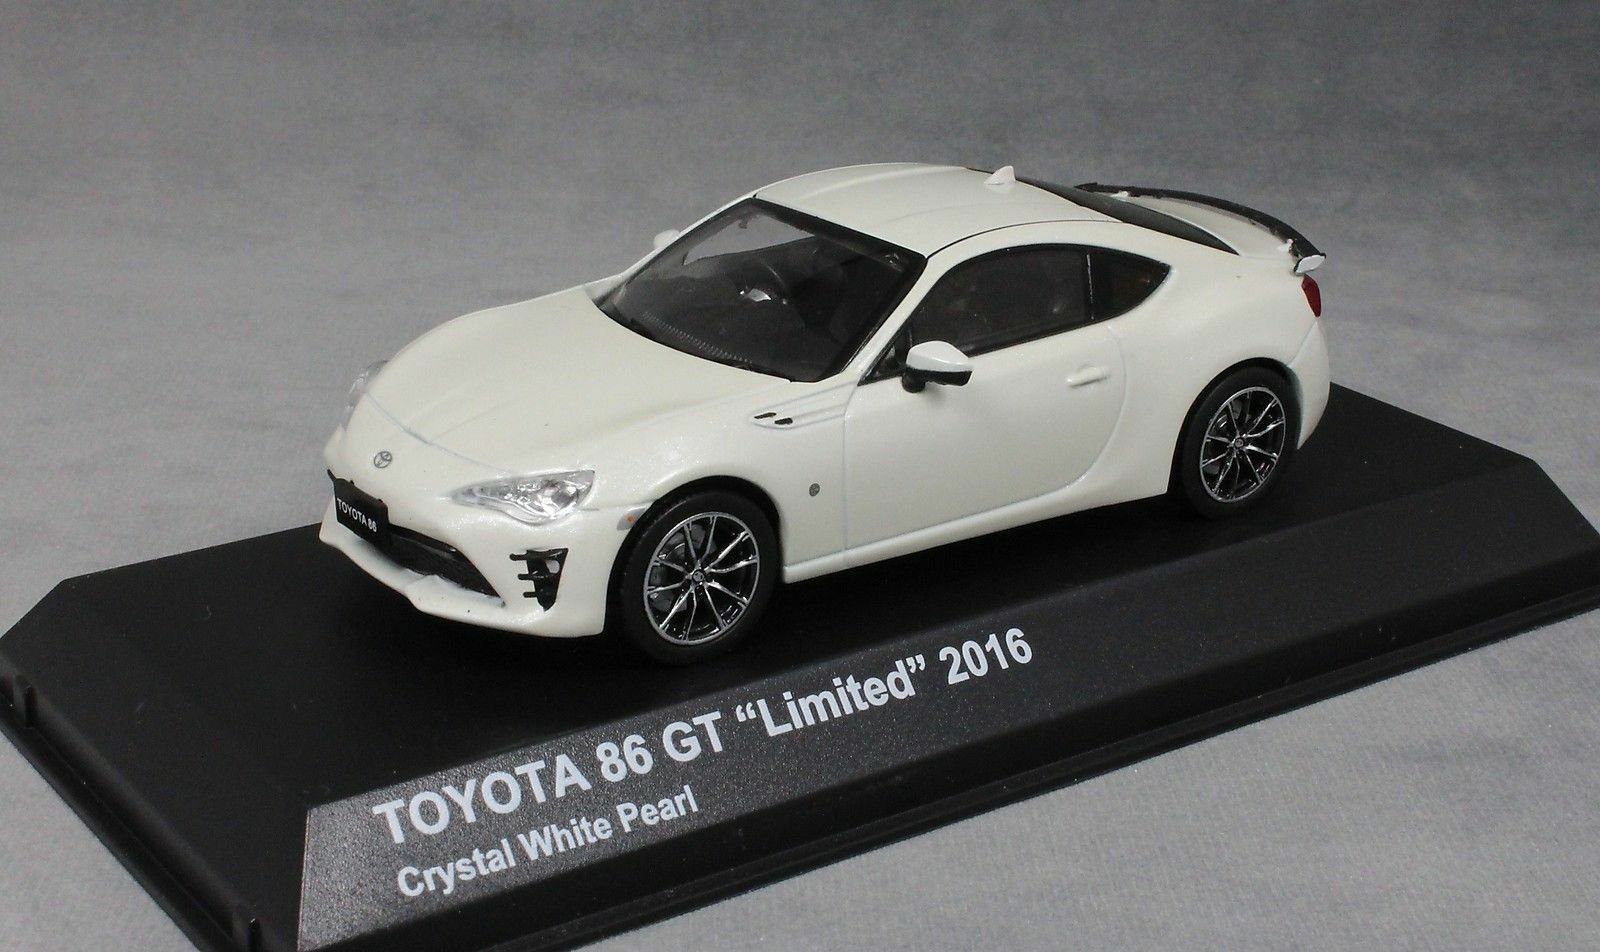 TOYOTA 86 GT LIMITED 2016 CRYSTAL bianca PEARL KYOSHO 03895CW  WEISS bianca